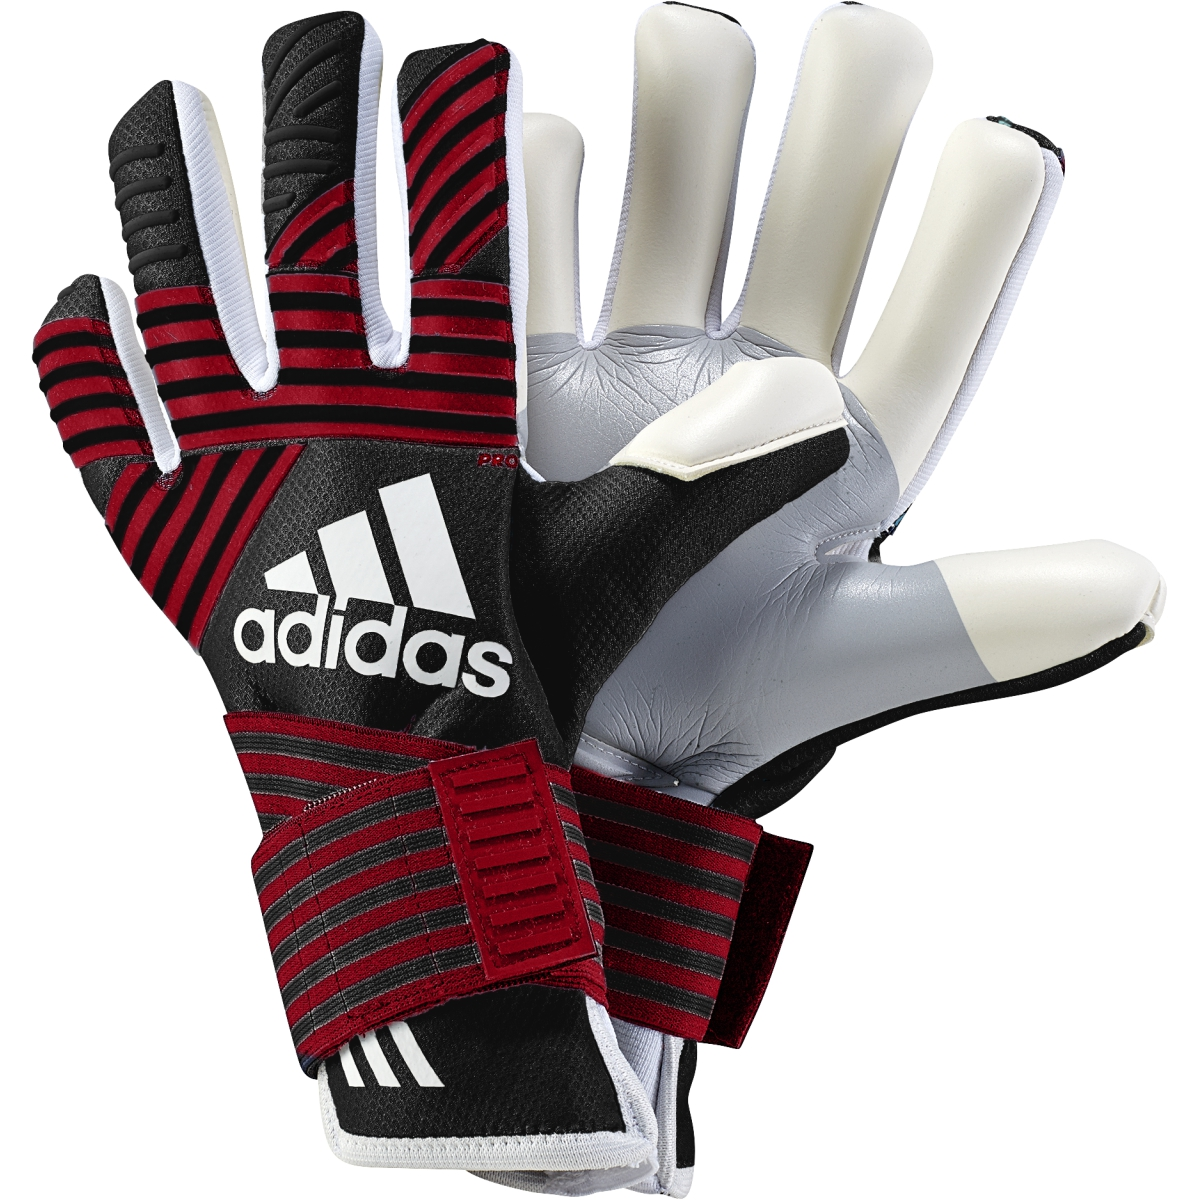 new product 84a65 4d2ed adidas Ace Trans Pro GK Glove - Black/Red | Soccer ...